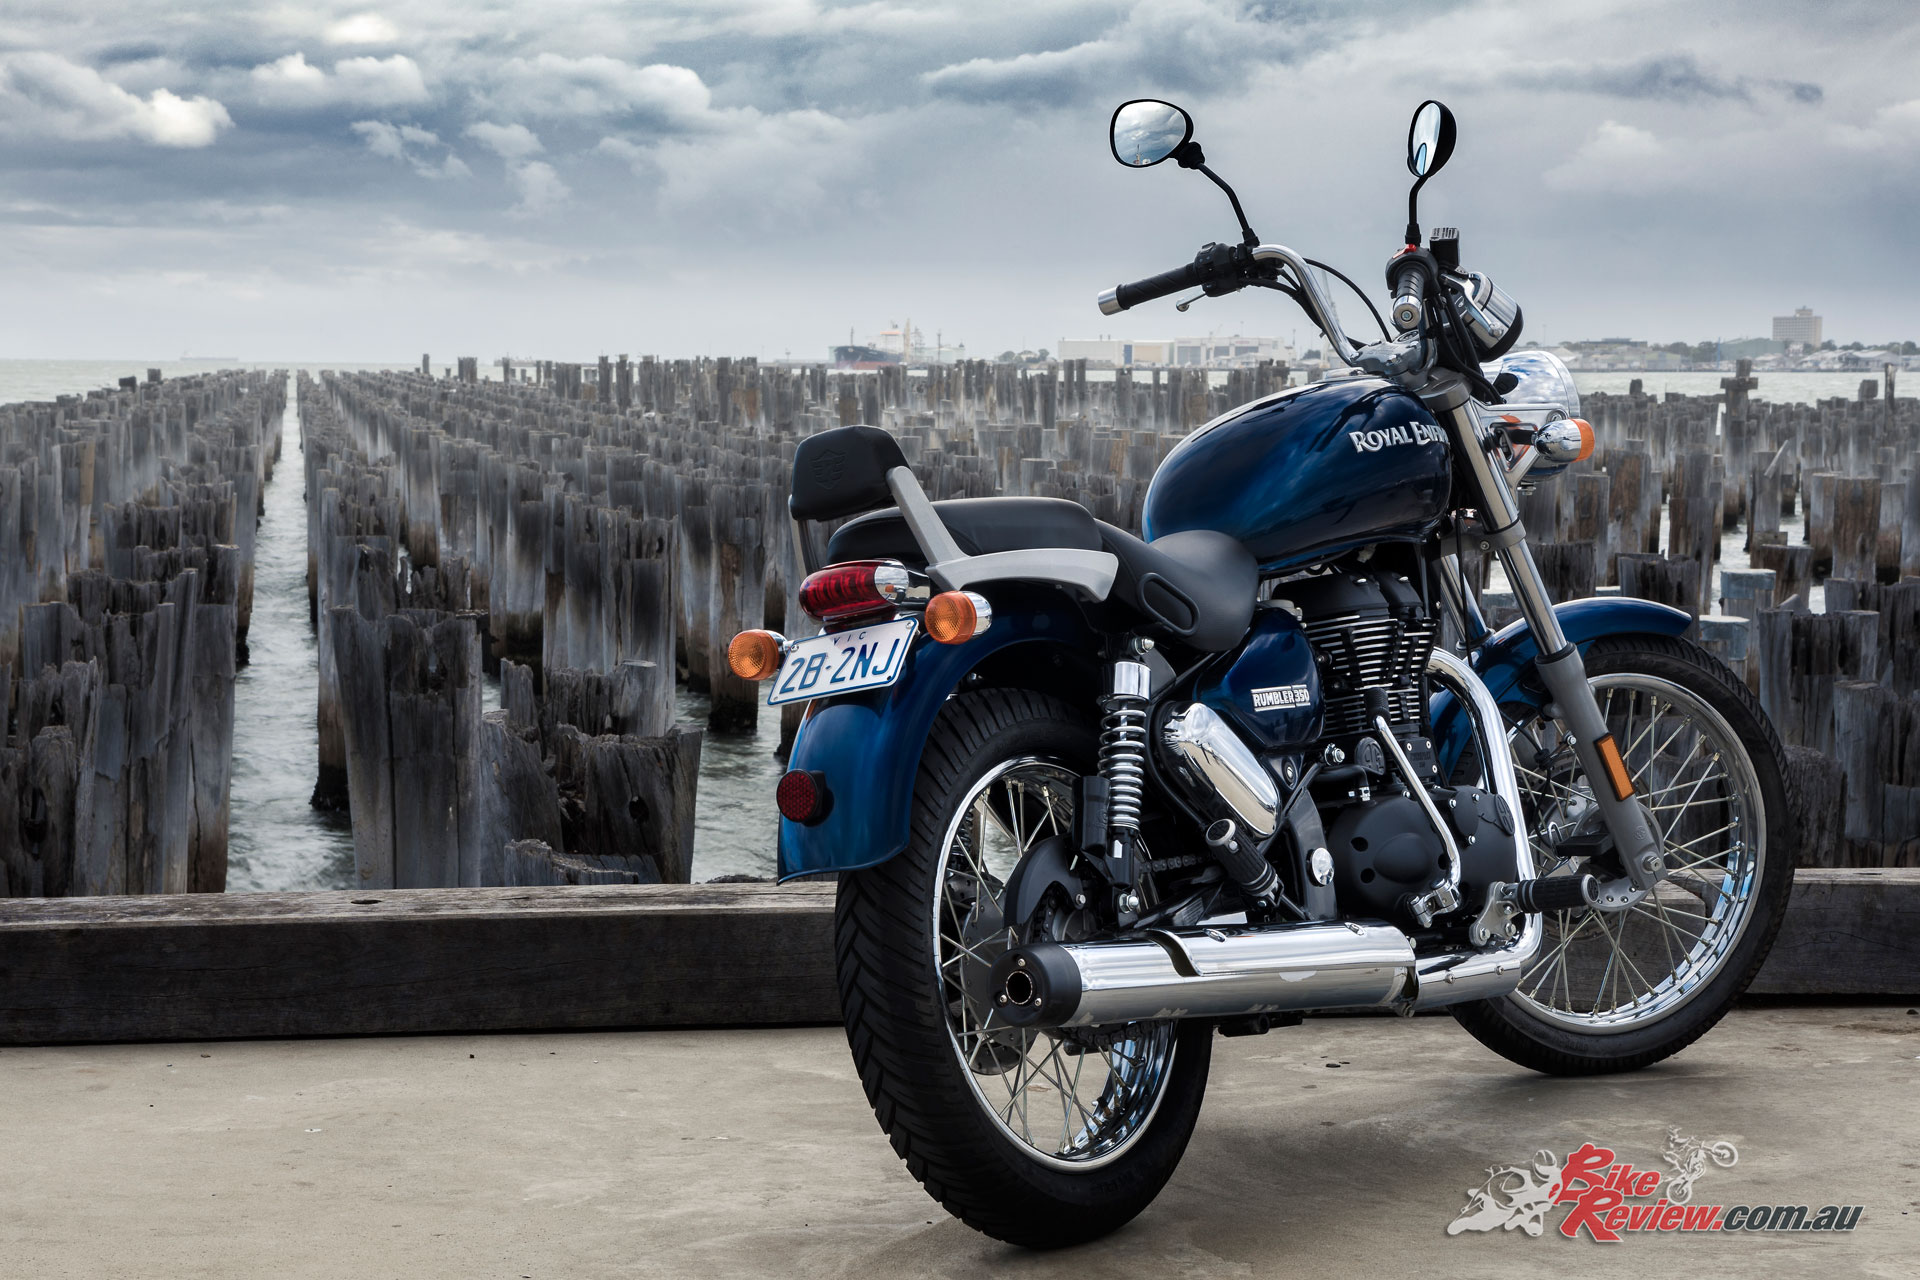 The latest Royal Enfield to hit Australian shores, the Rumbler 350 is aimed at the LAMS cruiser market